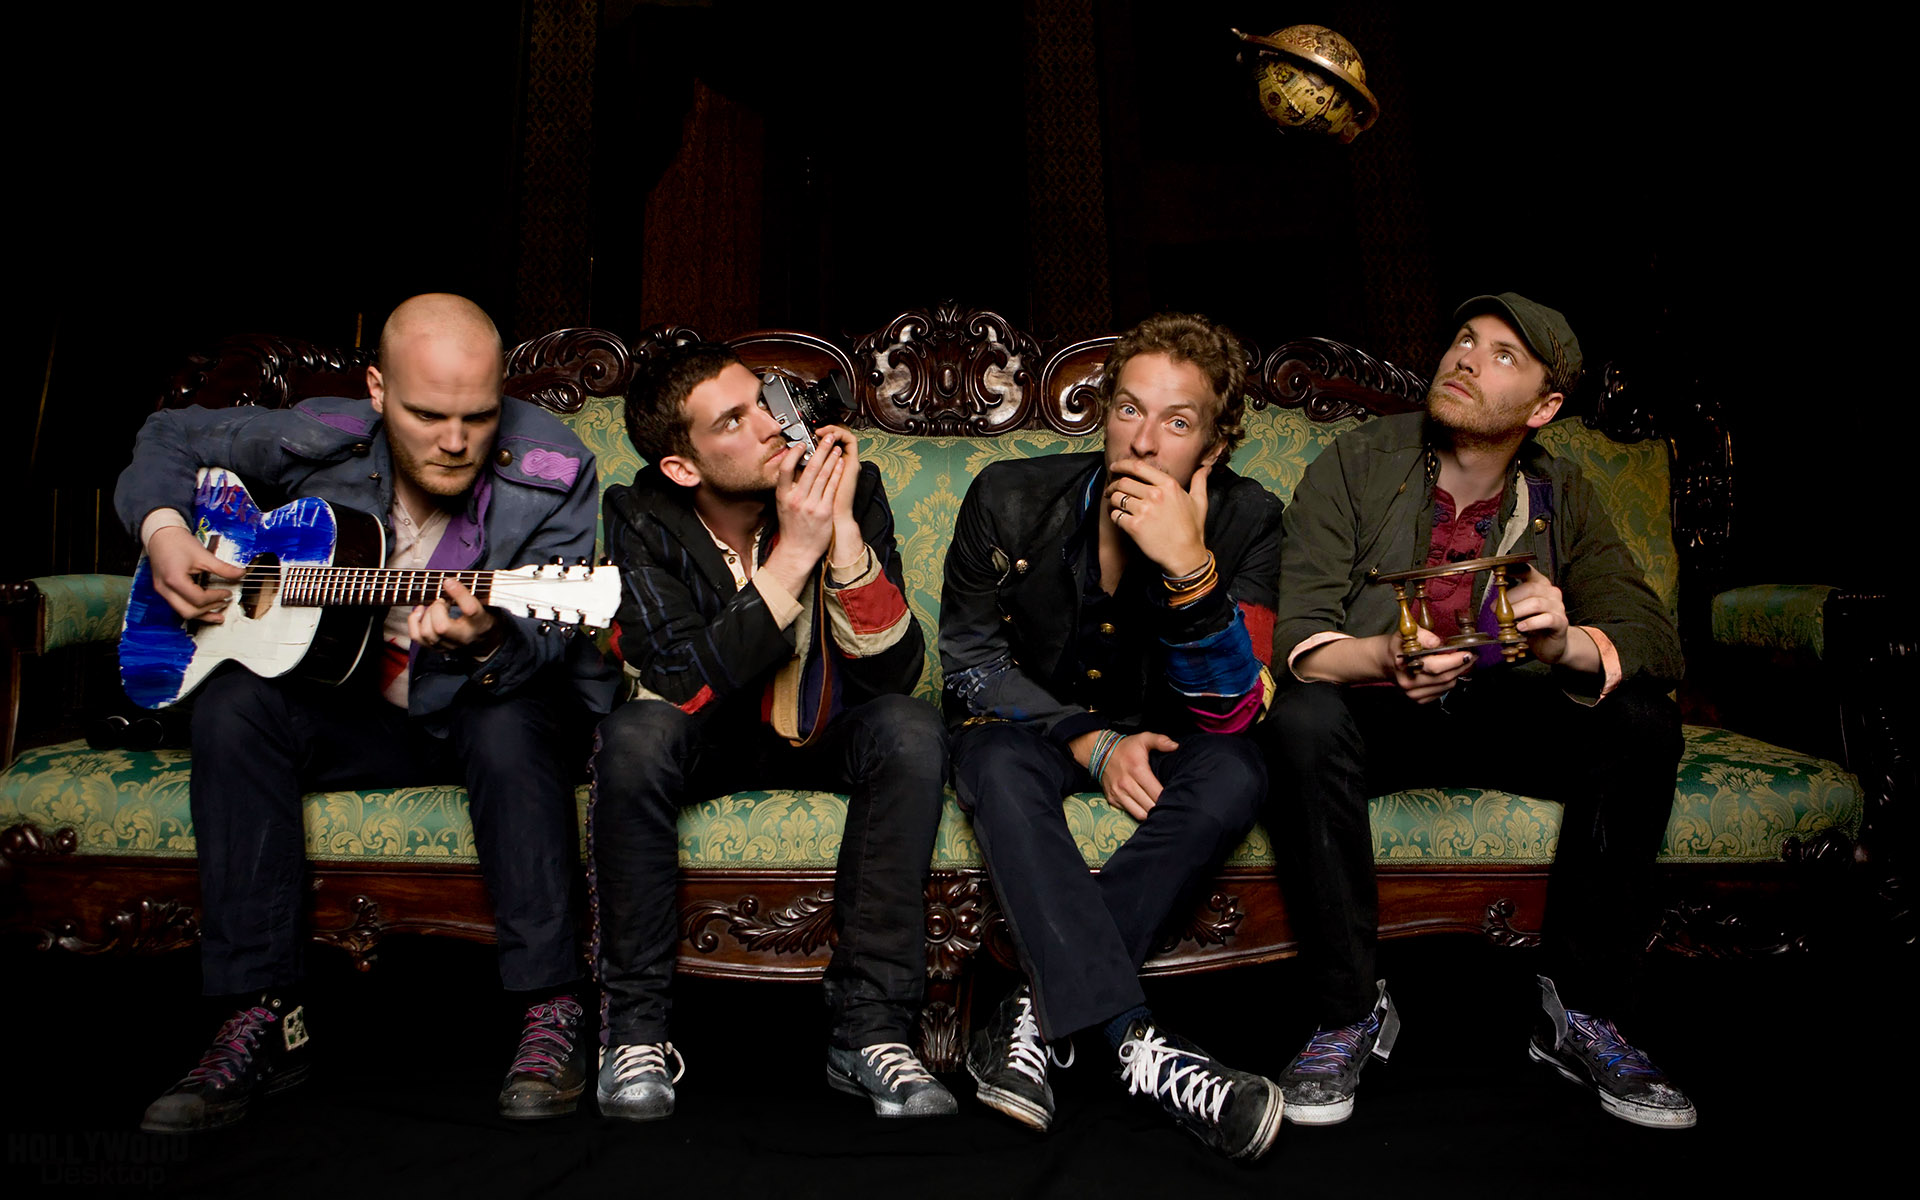 Music - COLDPLAY  - Cool - Photography - Artistic - Music Wallpaper